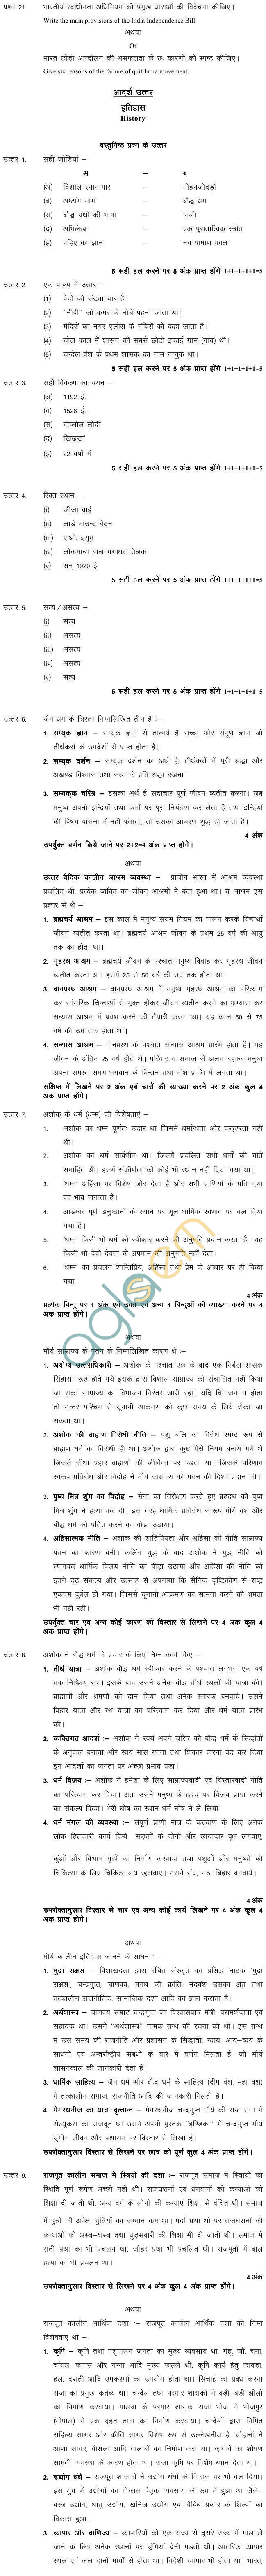 MP BoardClass XII History Model Questions & Answers -Set 2